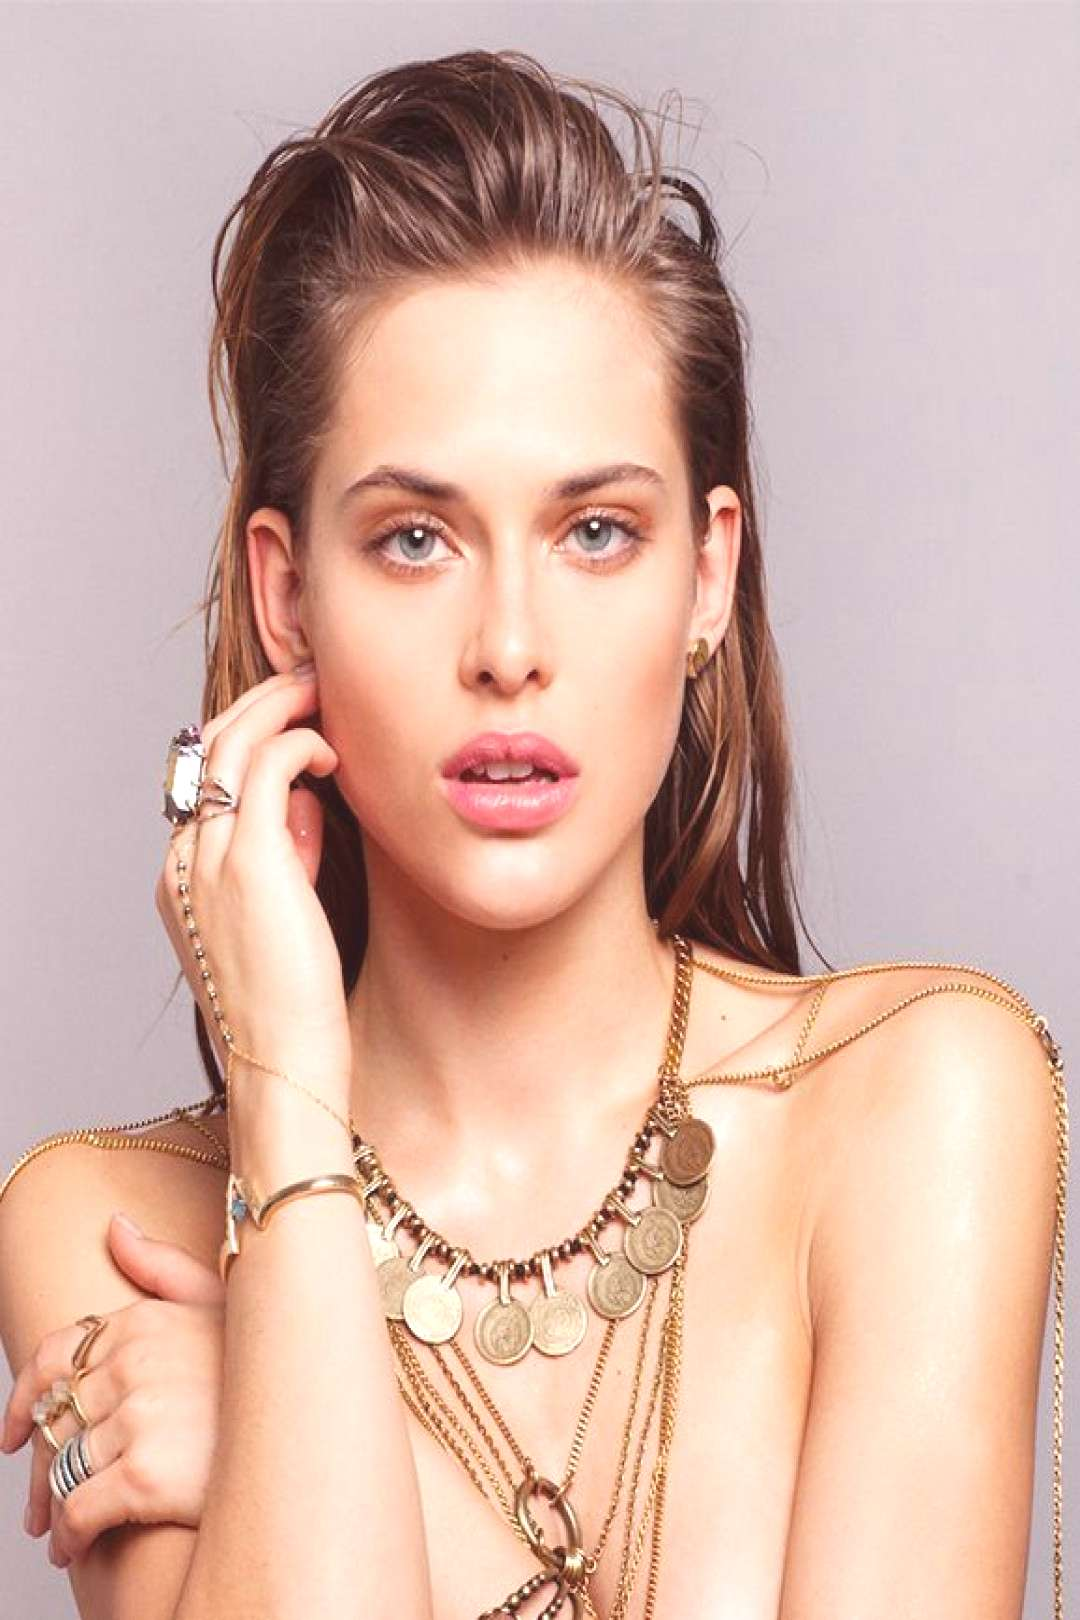 More is more an original jewelry editorial - womens accessories - bags - letter ... - More is mo